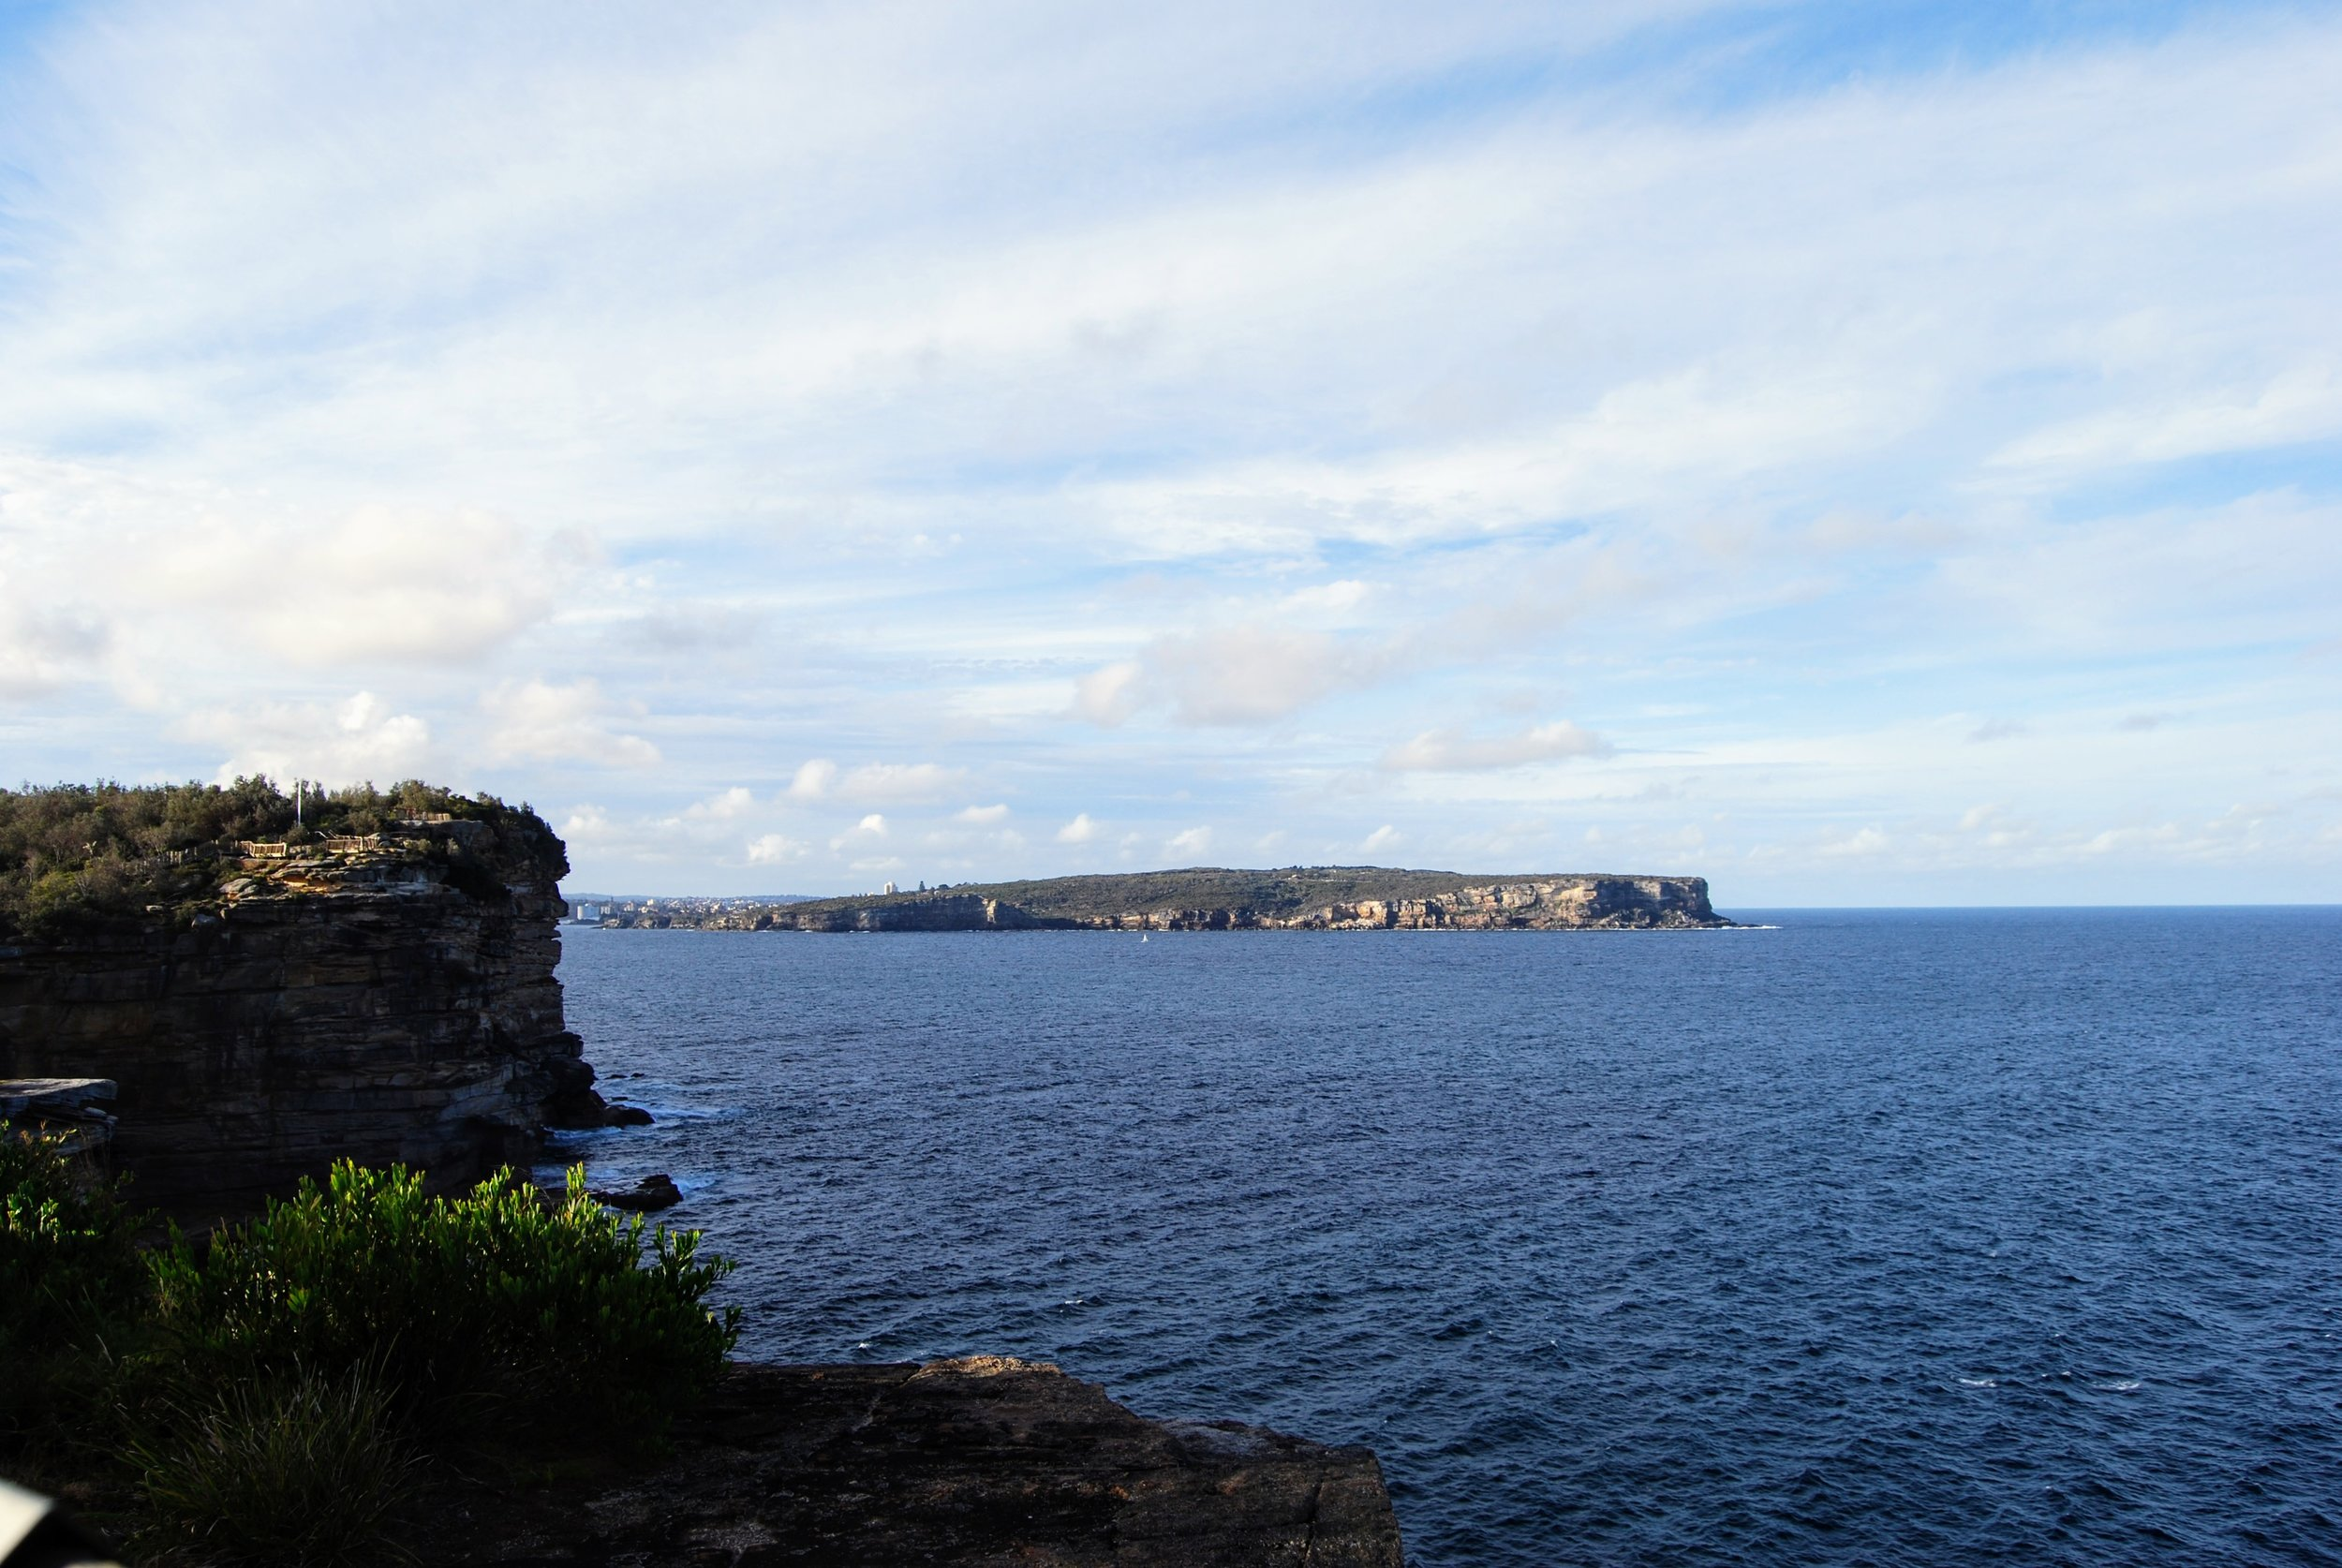 Looking across to North Head